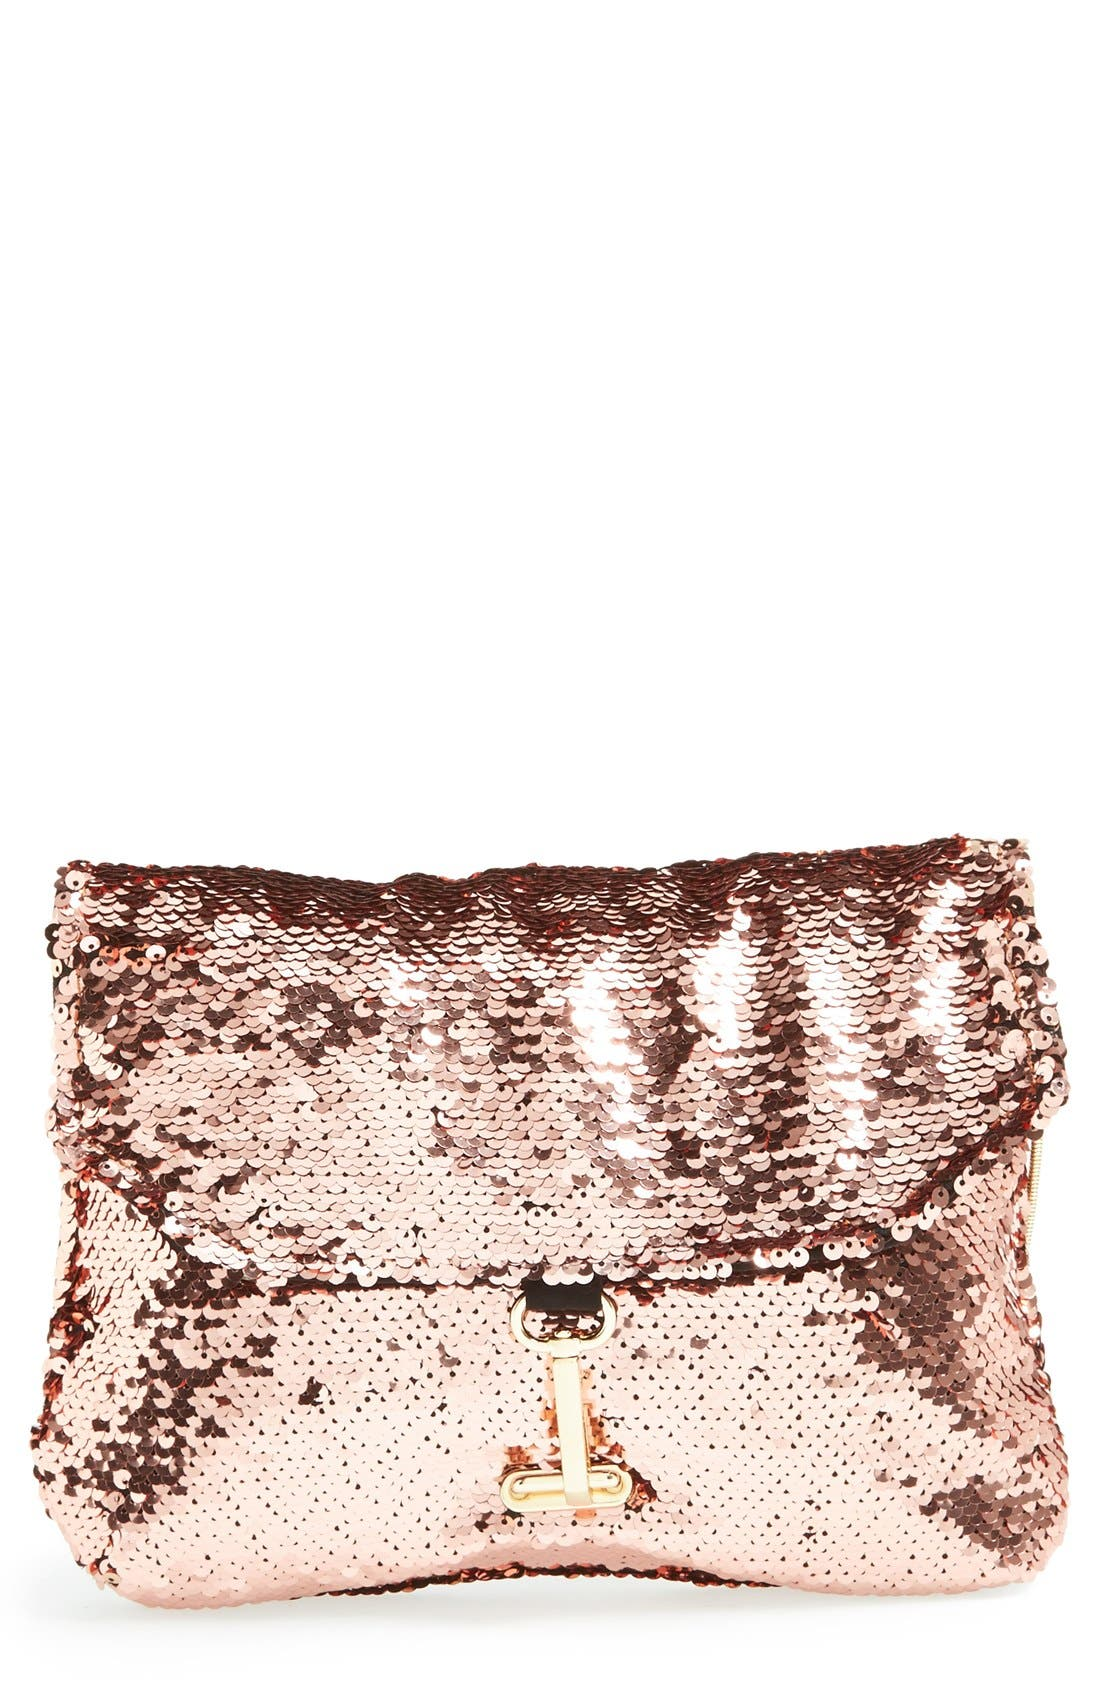 Alternate Image 1 Selected - Deux Lux 'Ariel' Convertible Sequin Clutch